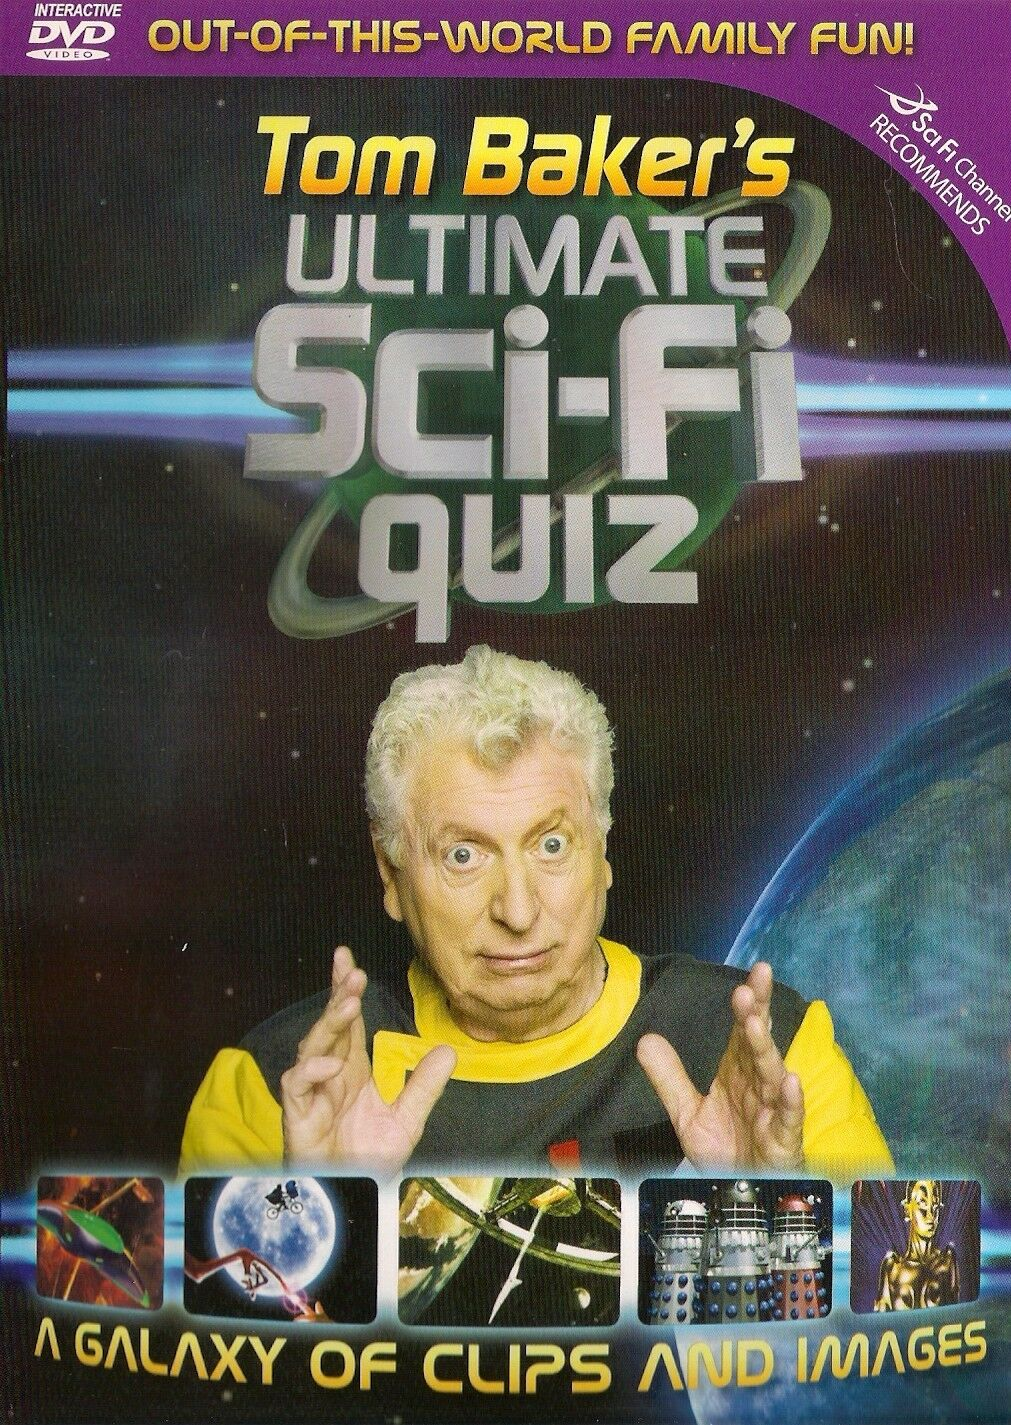 Tom Baker's Ultimate Sci-Fi Quiz DVD Game (Liberation, 2006) - as played by Tim Worthington, Vikki Gregorich, Jeff Lewis and Garreth F. Hirons in The Best Of Looks Unfamiliar.